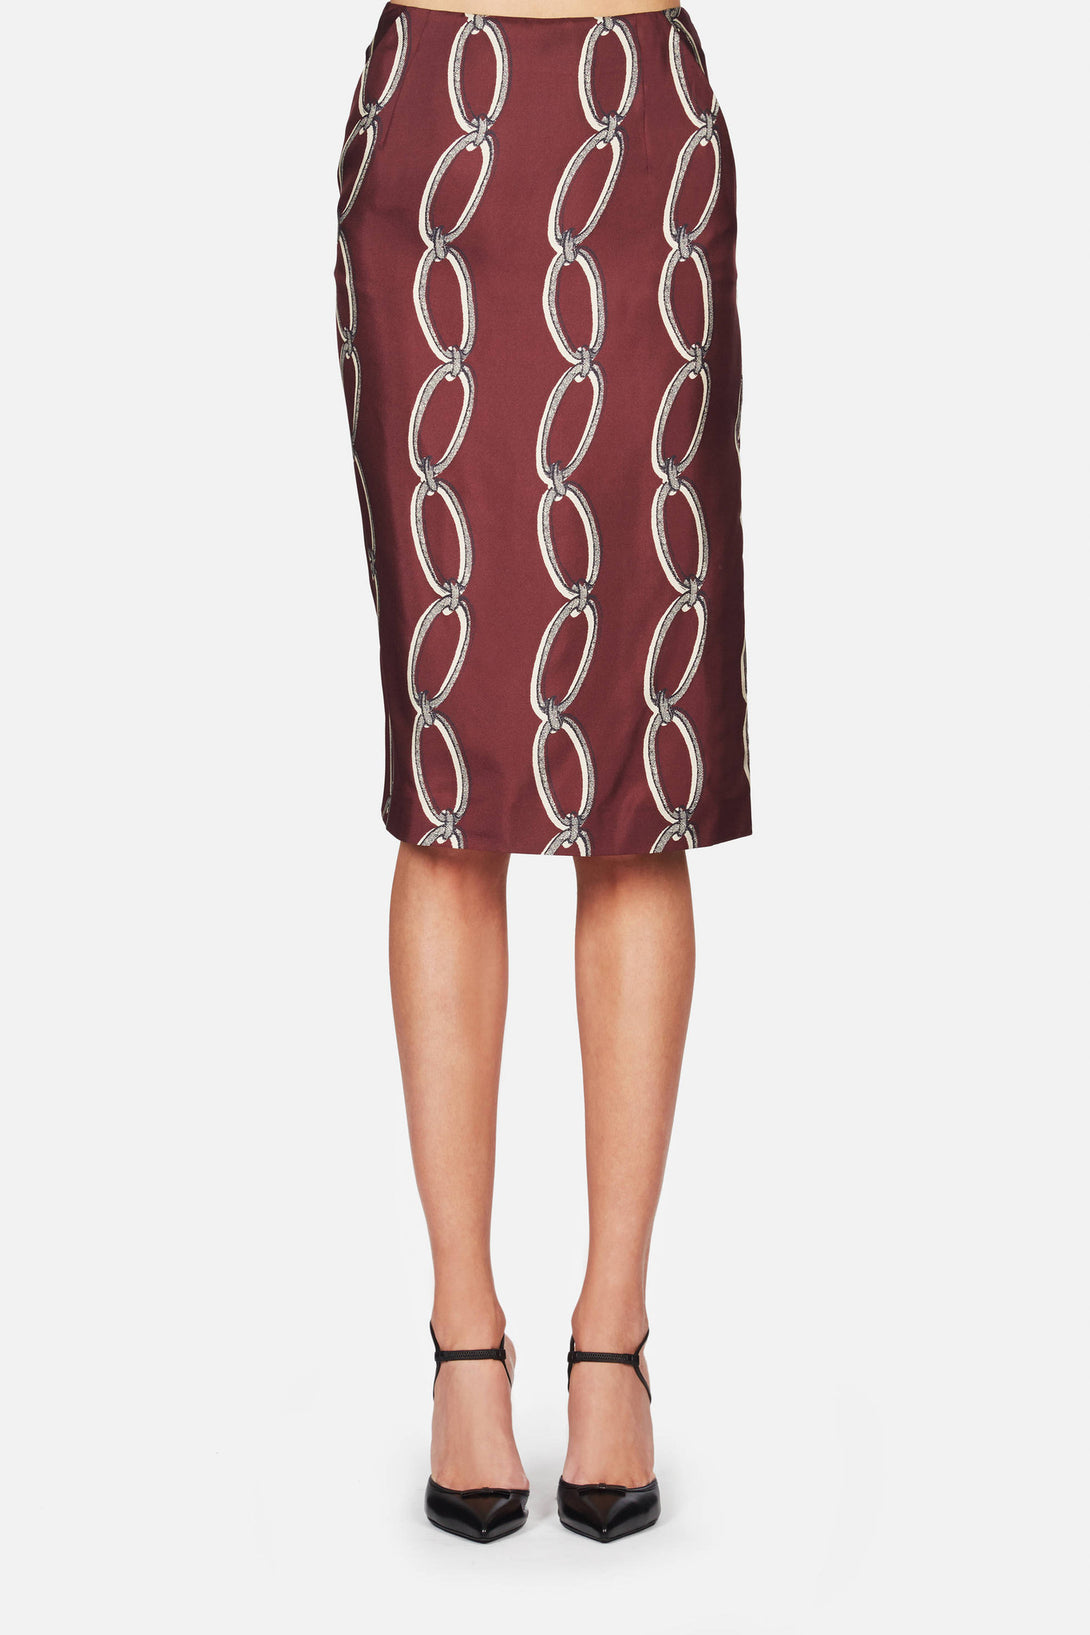 Intrepid Skirt - Burgundy Chain